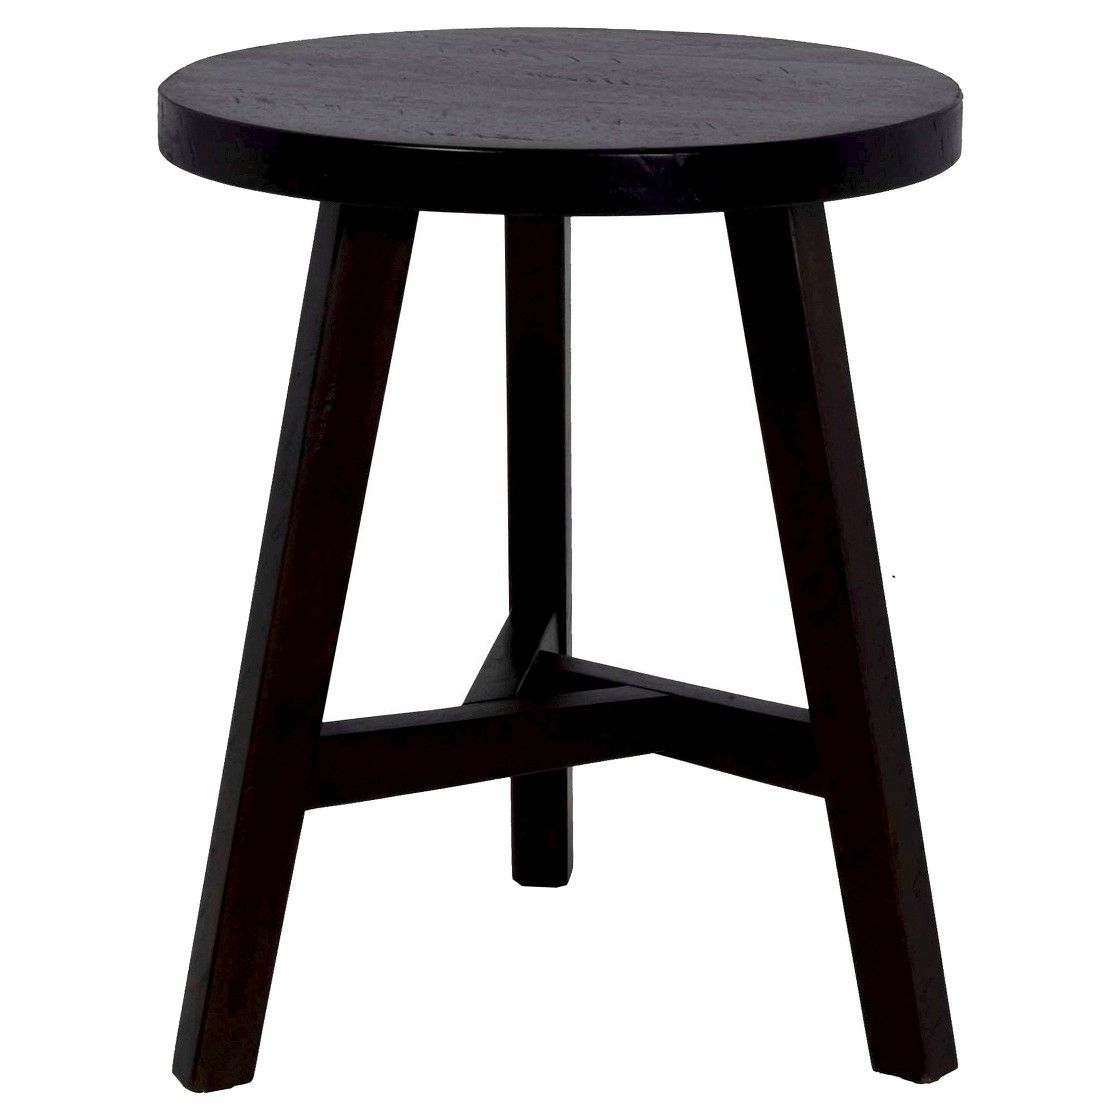 threshold round stool accent table espresso decor metal floor transition reducer outdoor battery lamps granite top coffee dining room console small porch chairs wall mounted side